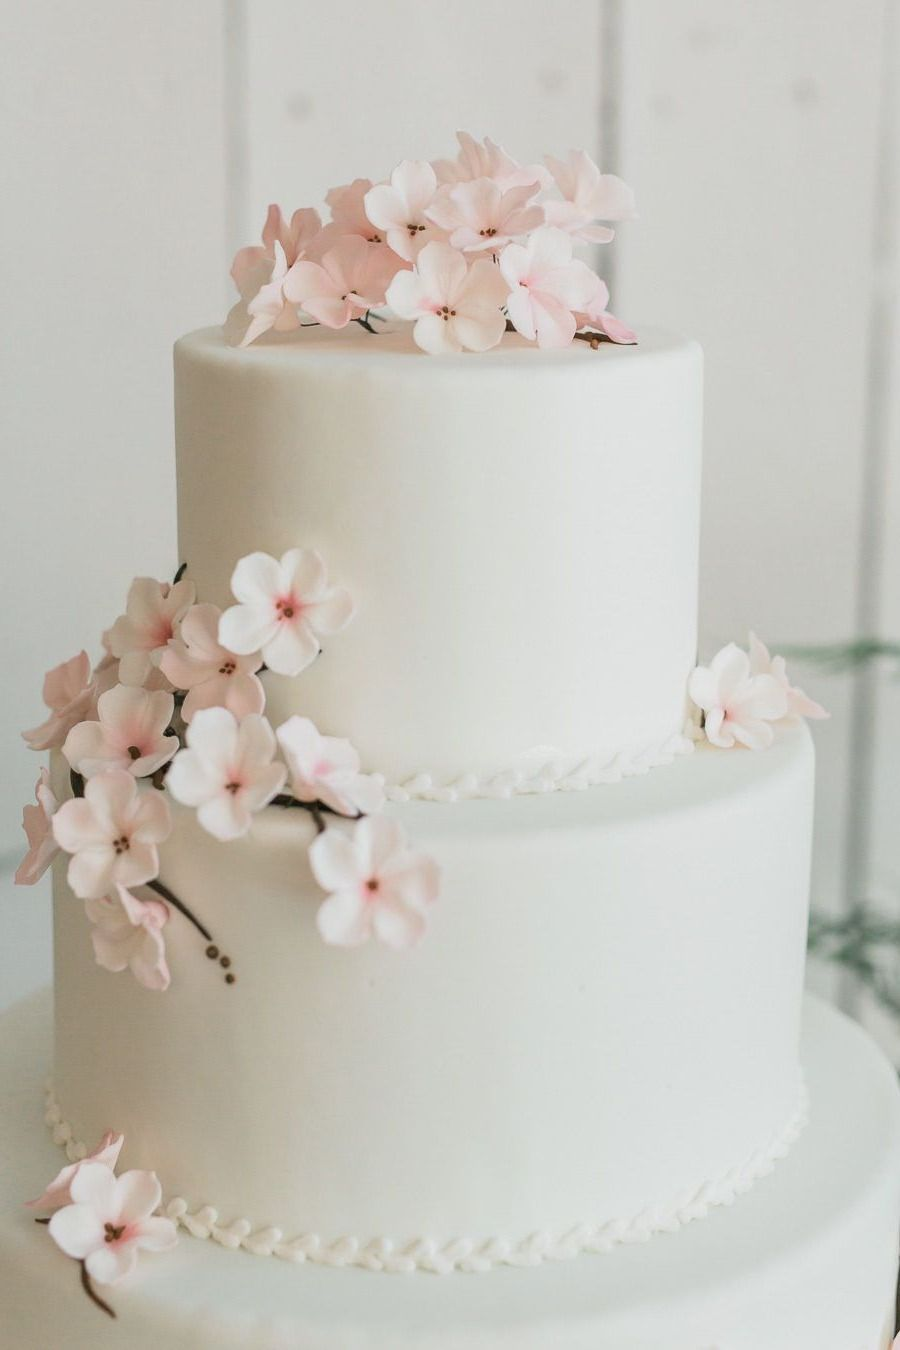 Top 20 Simple Pink Wedding Cakes For Spring Summer Weddings Pink Wedding Cake Wedding Cake Decorations Romantic Wedding Cake